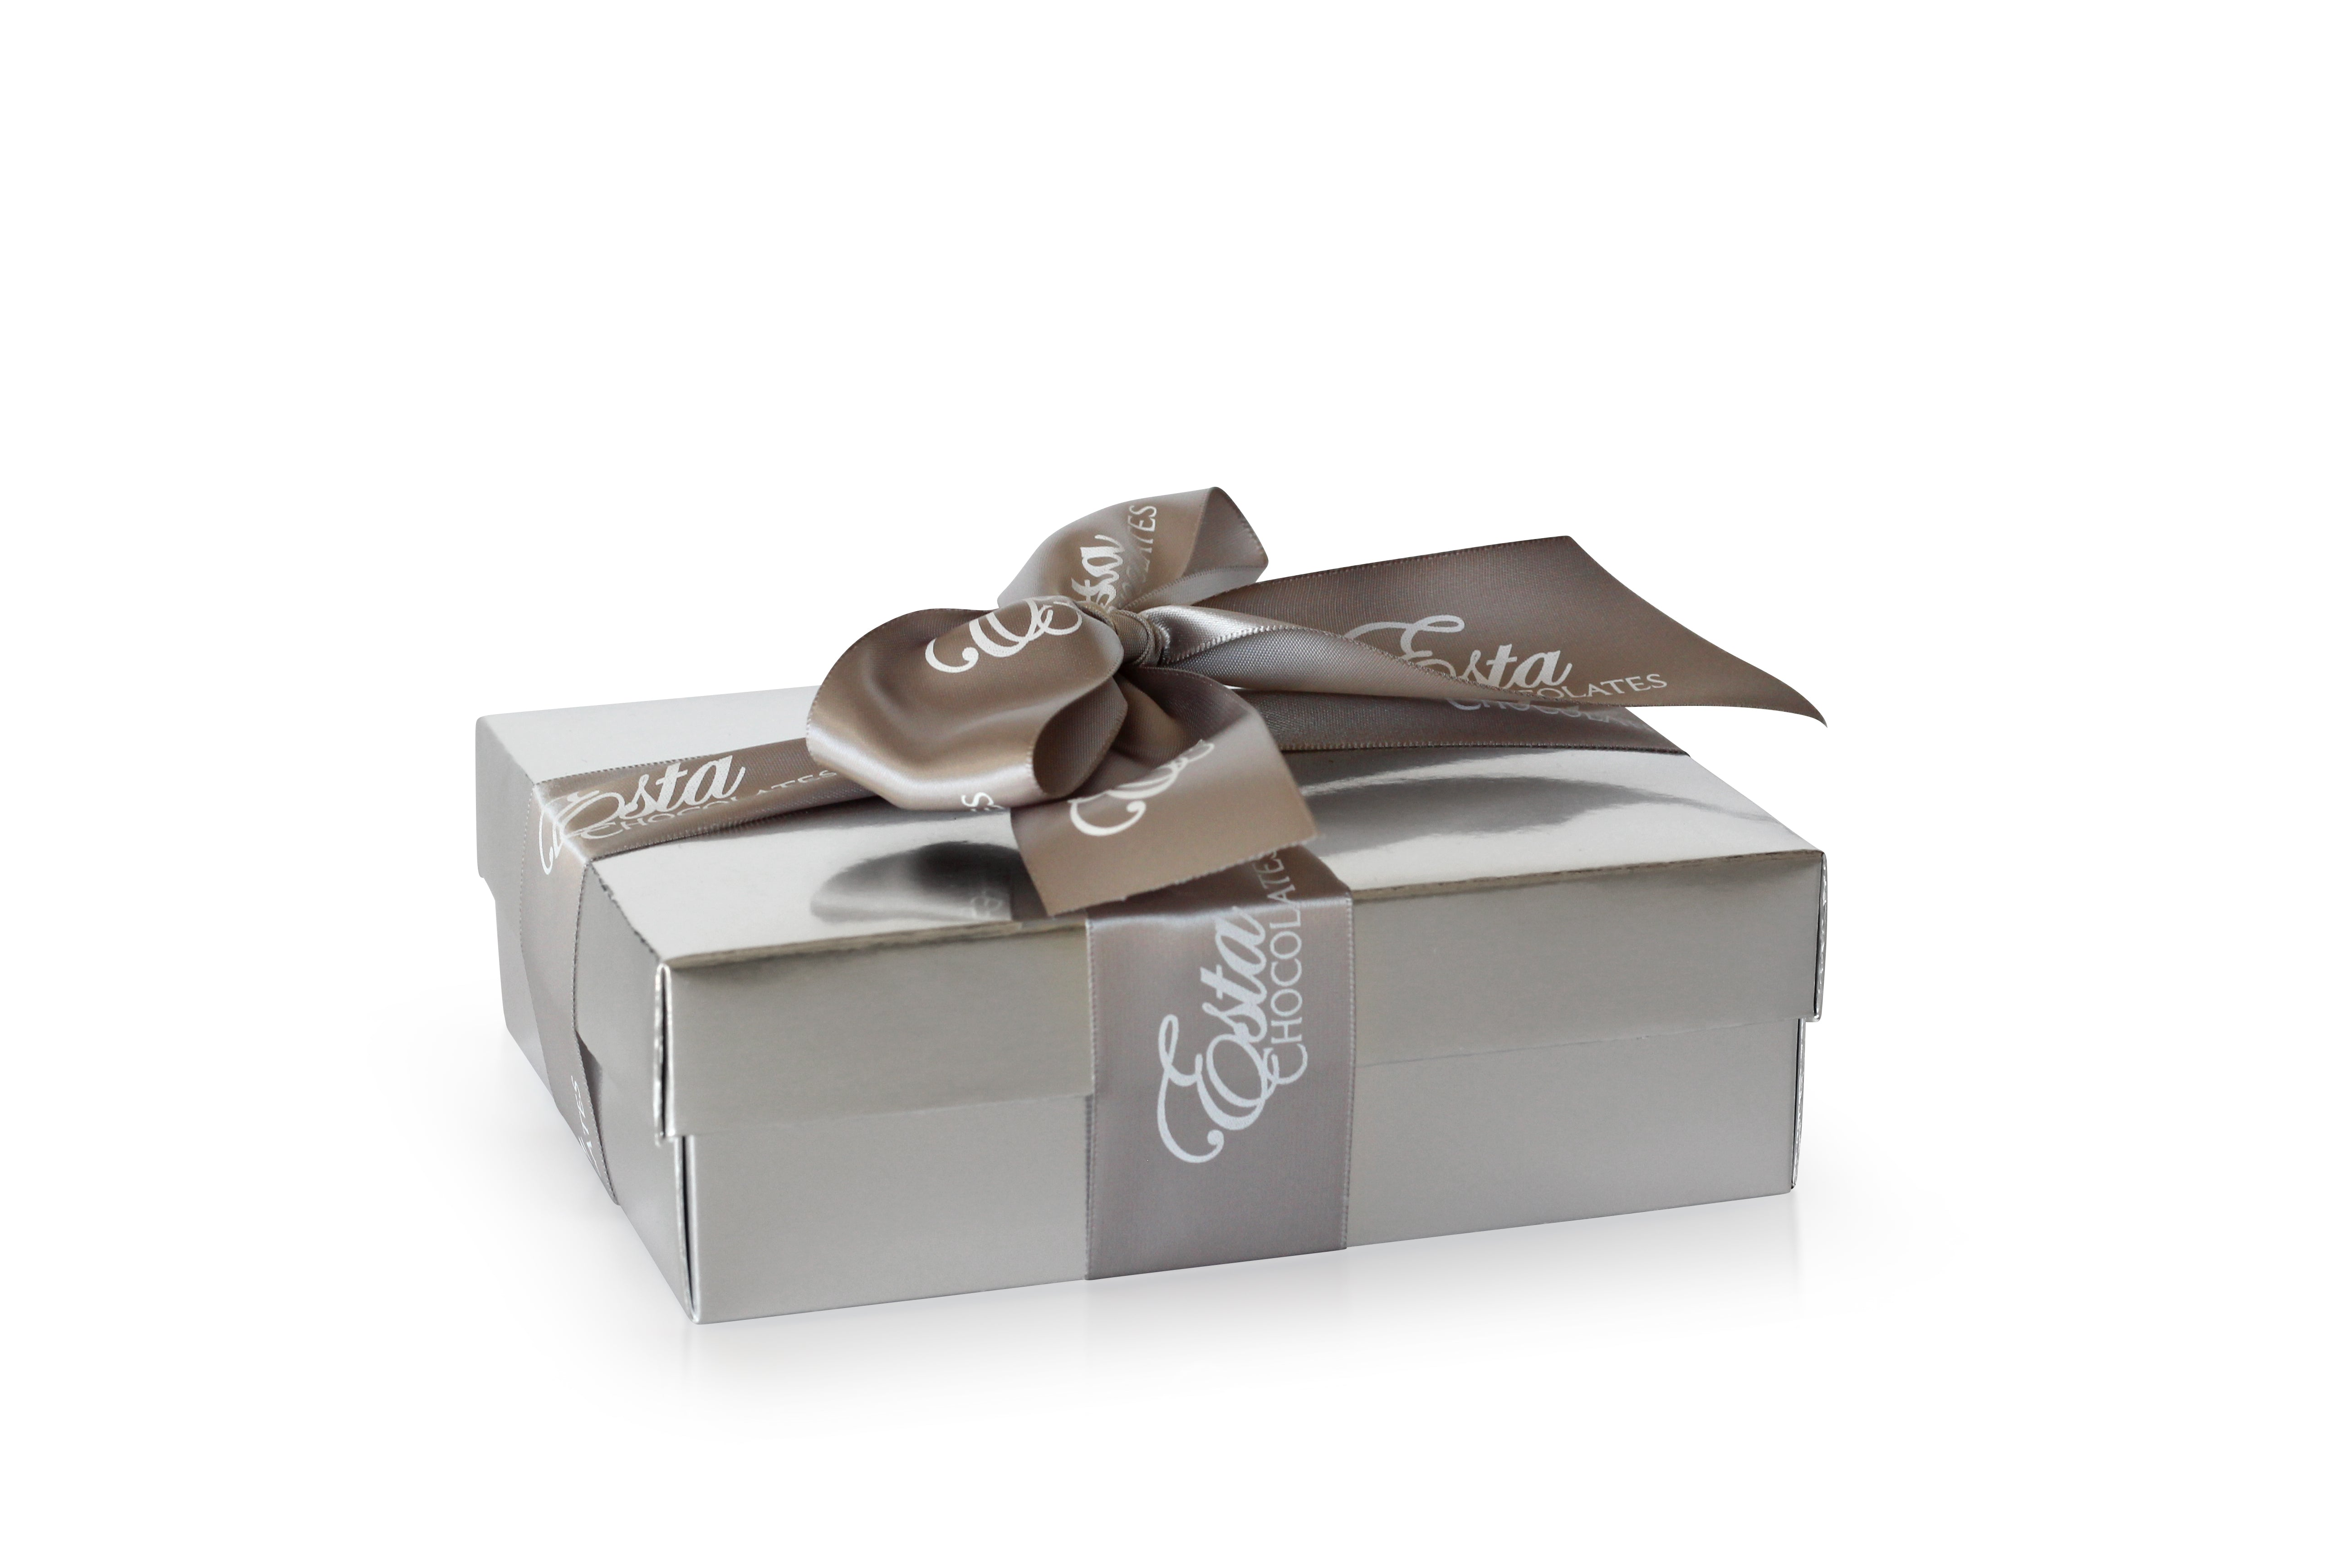 Esta 30 Assorted Truffle - Silver Gift Box